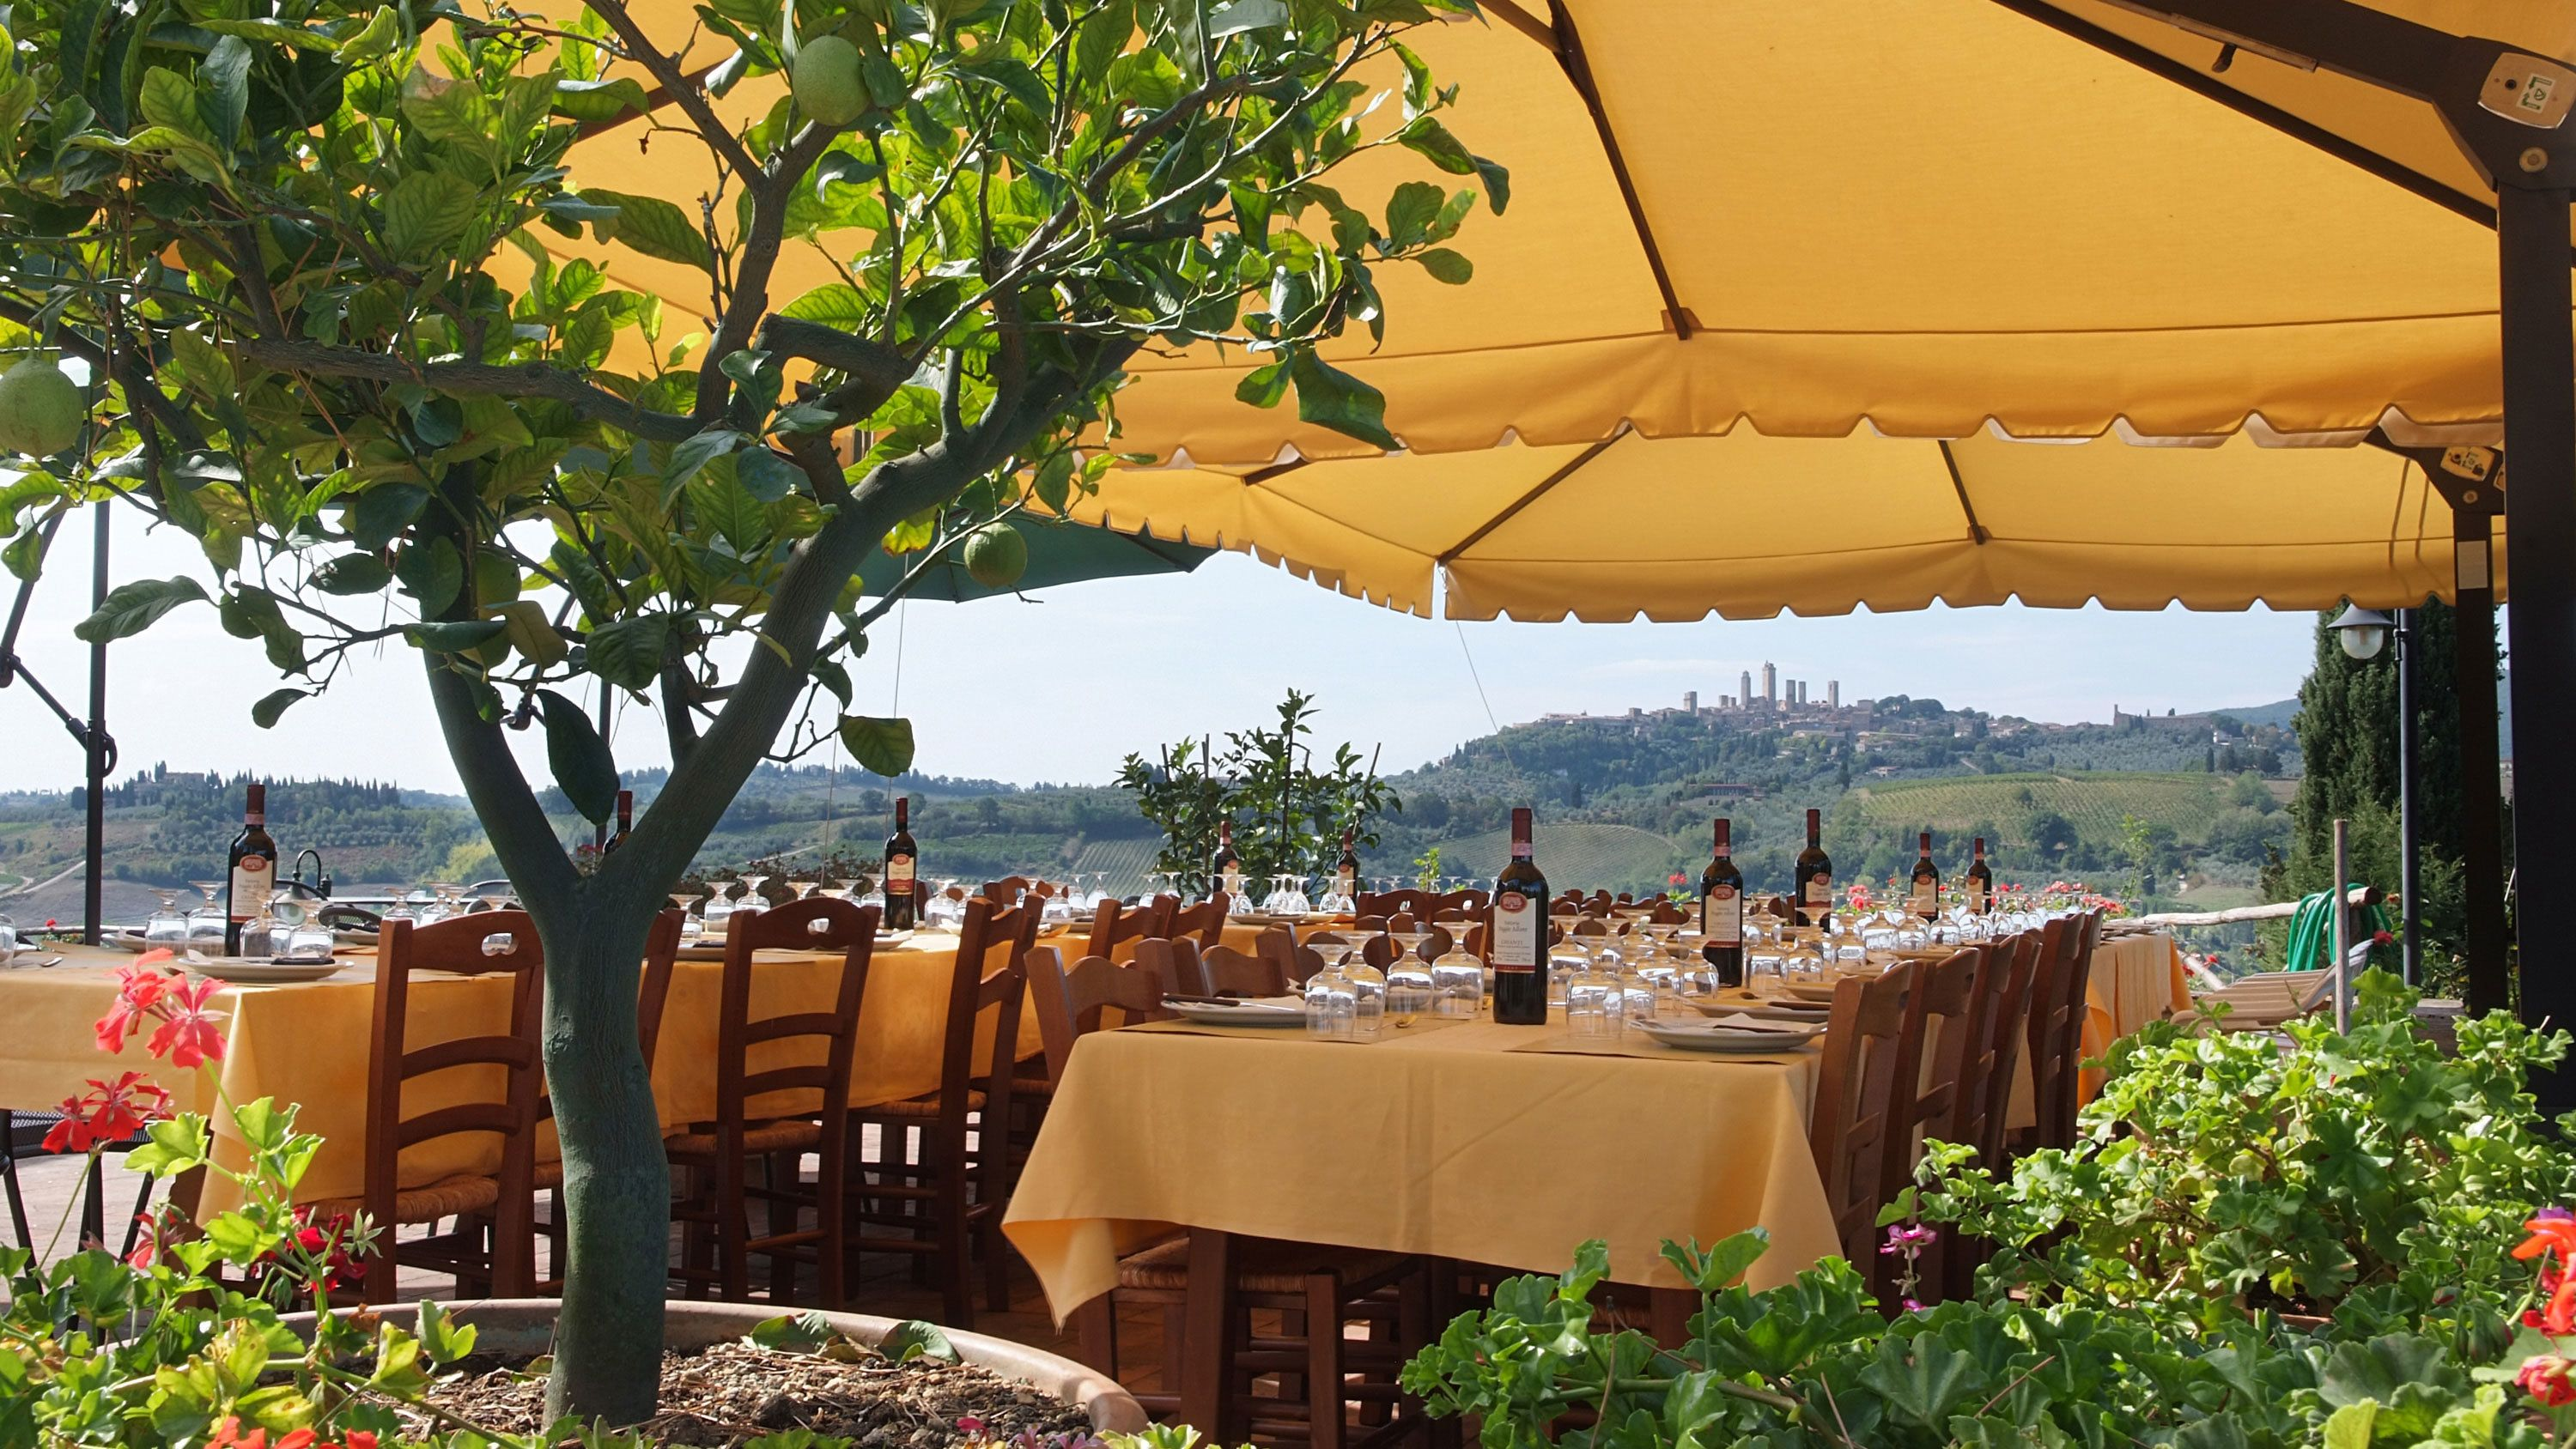 wine and dining tables set up outdoors in Italy